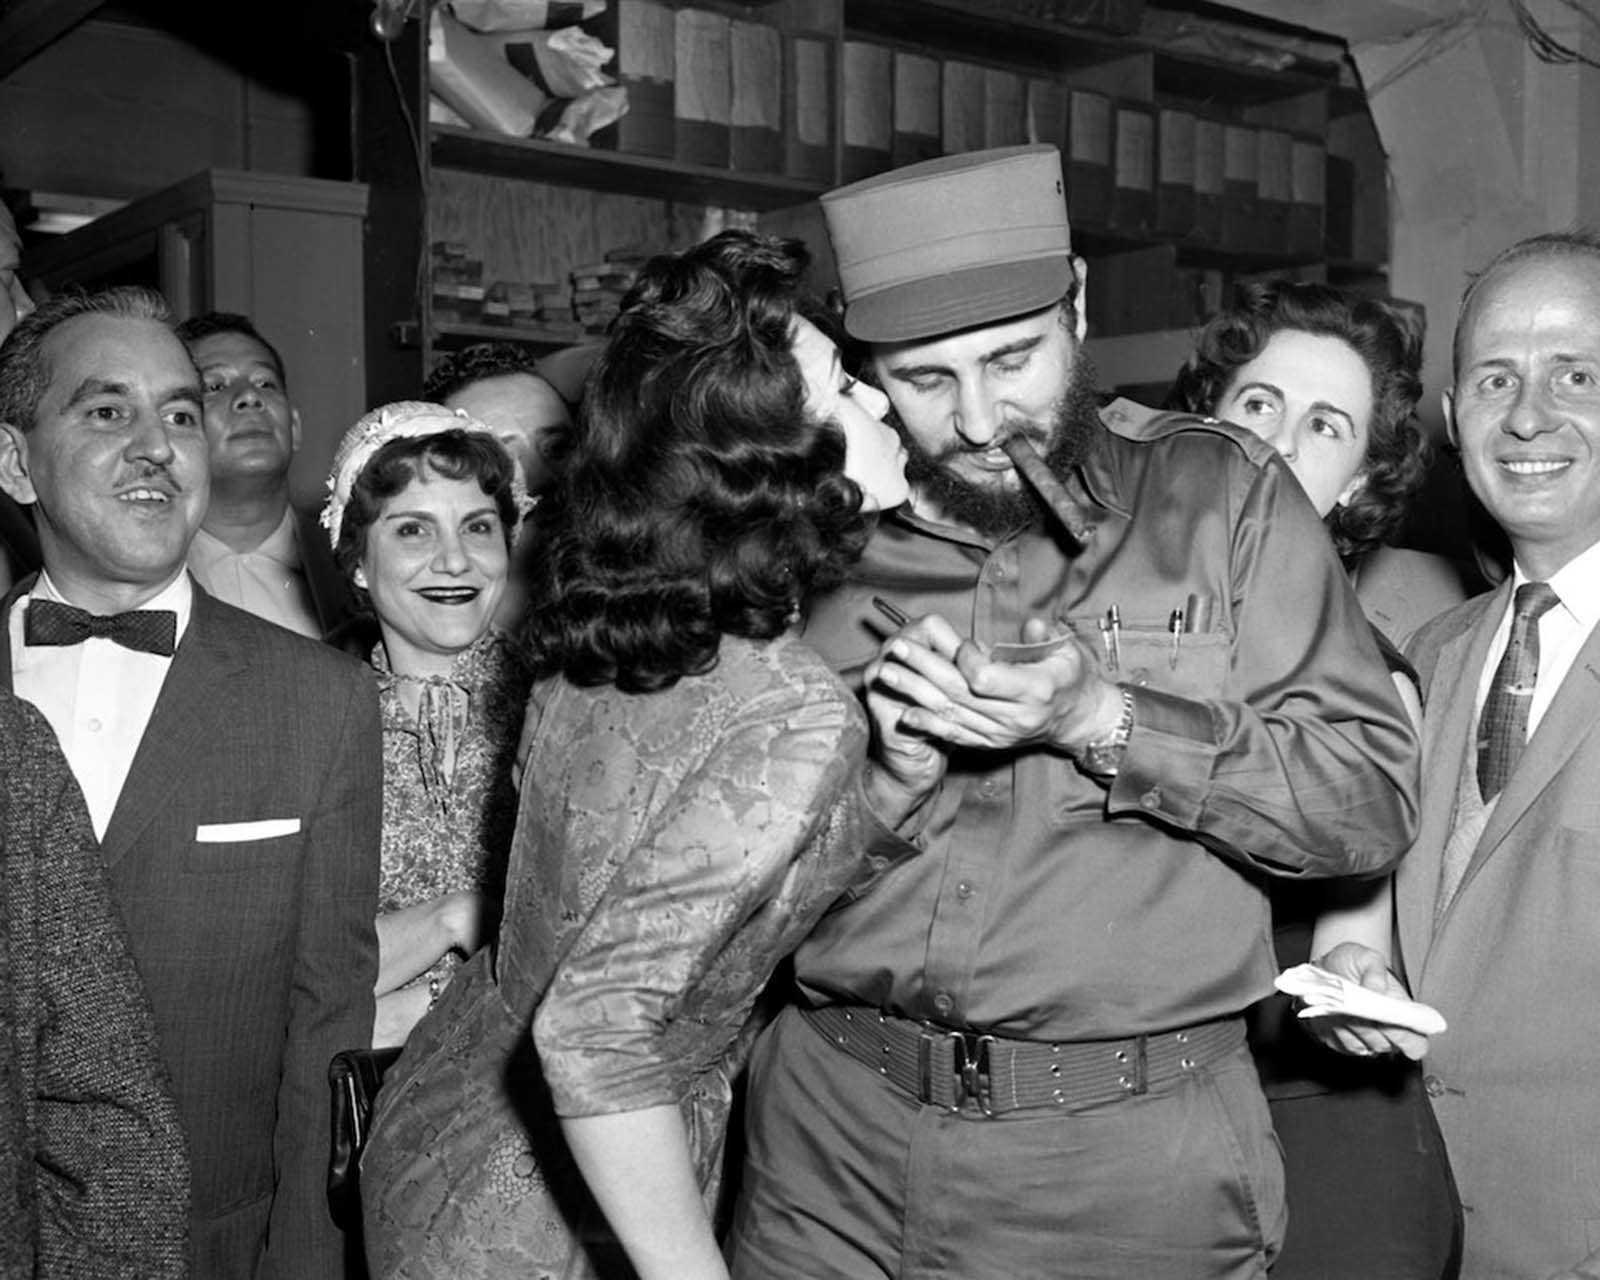 Miss Gladys Feijoo, 19, who was nominated Miss La Prensa of 1959, kisses Castro as he signs an autograph for her collection.